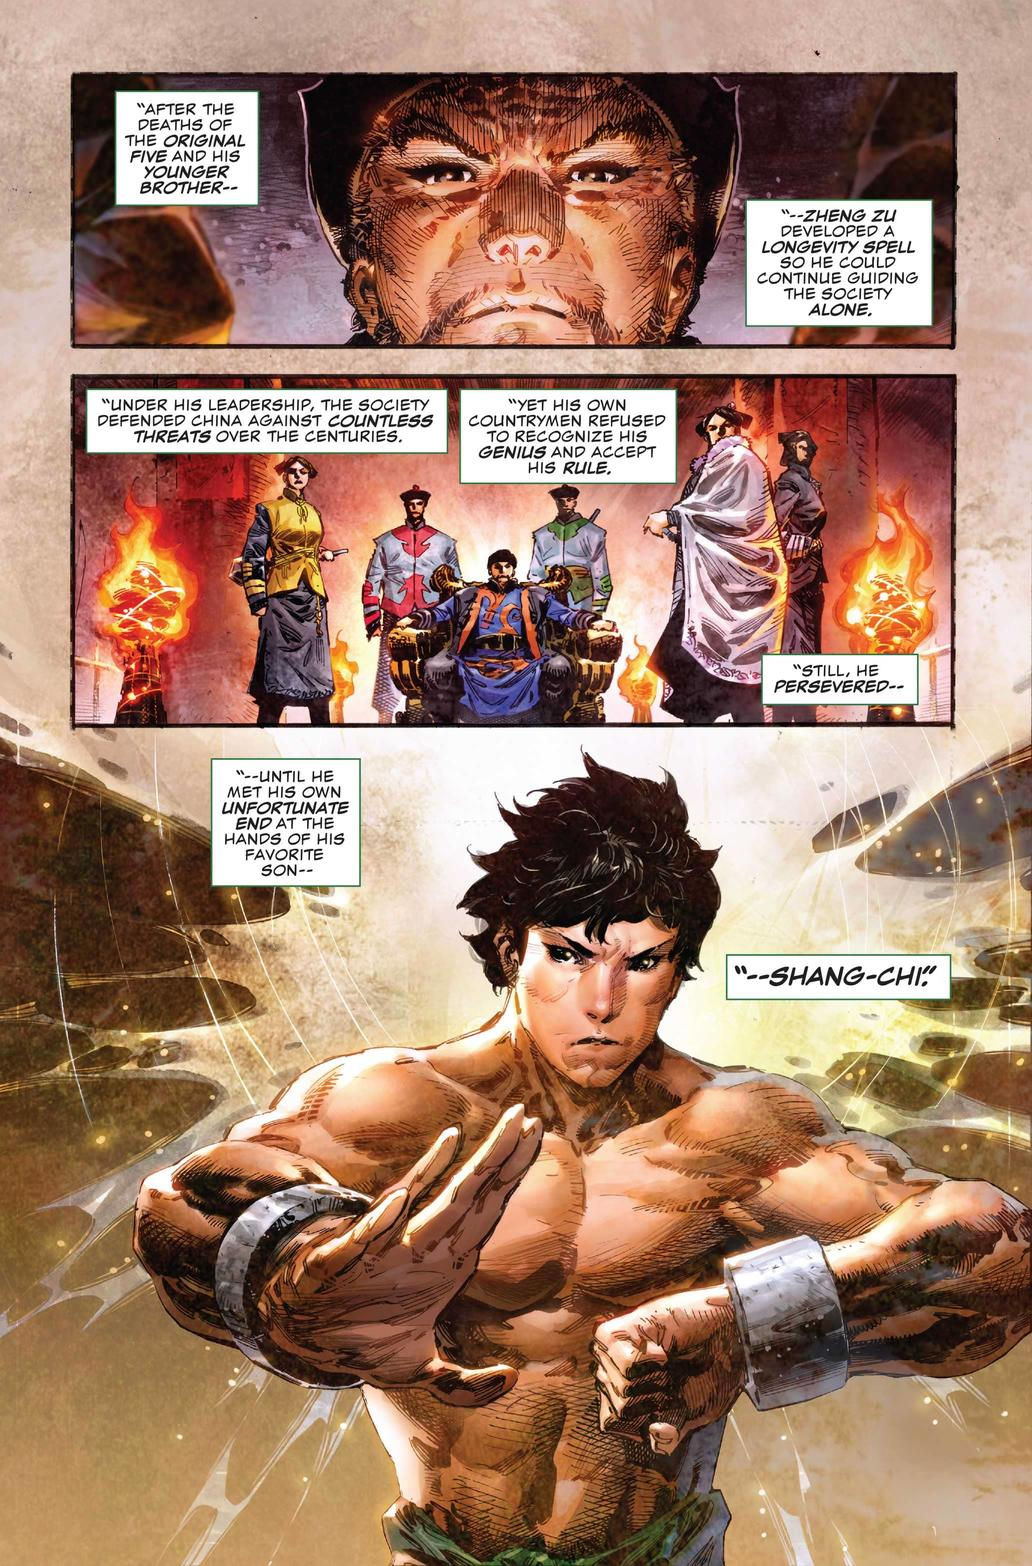 Preview page from Shang-Chi #1 with art by Philip Tan